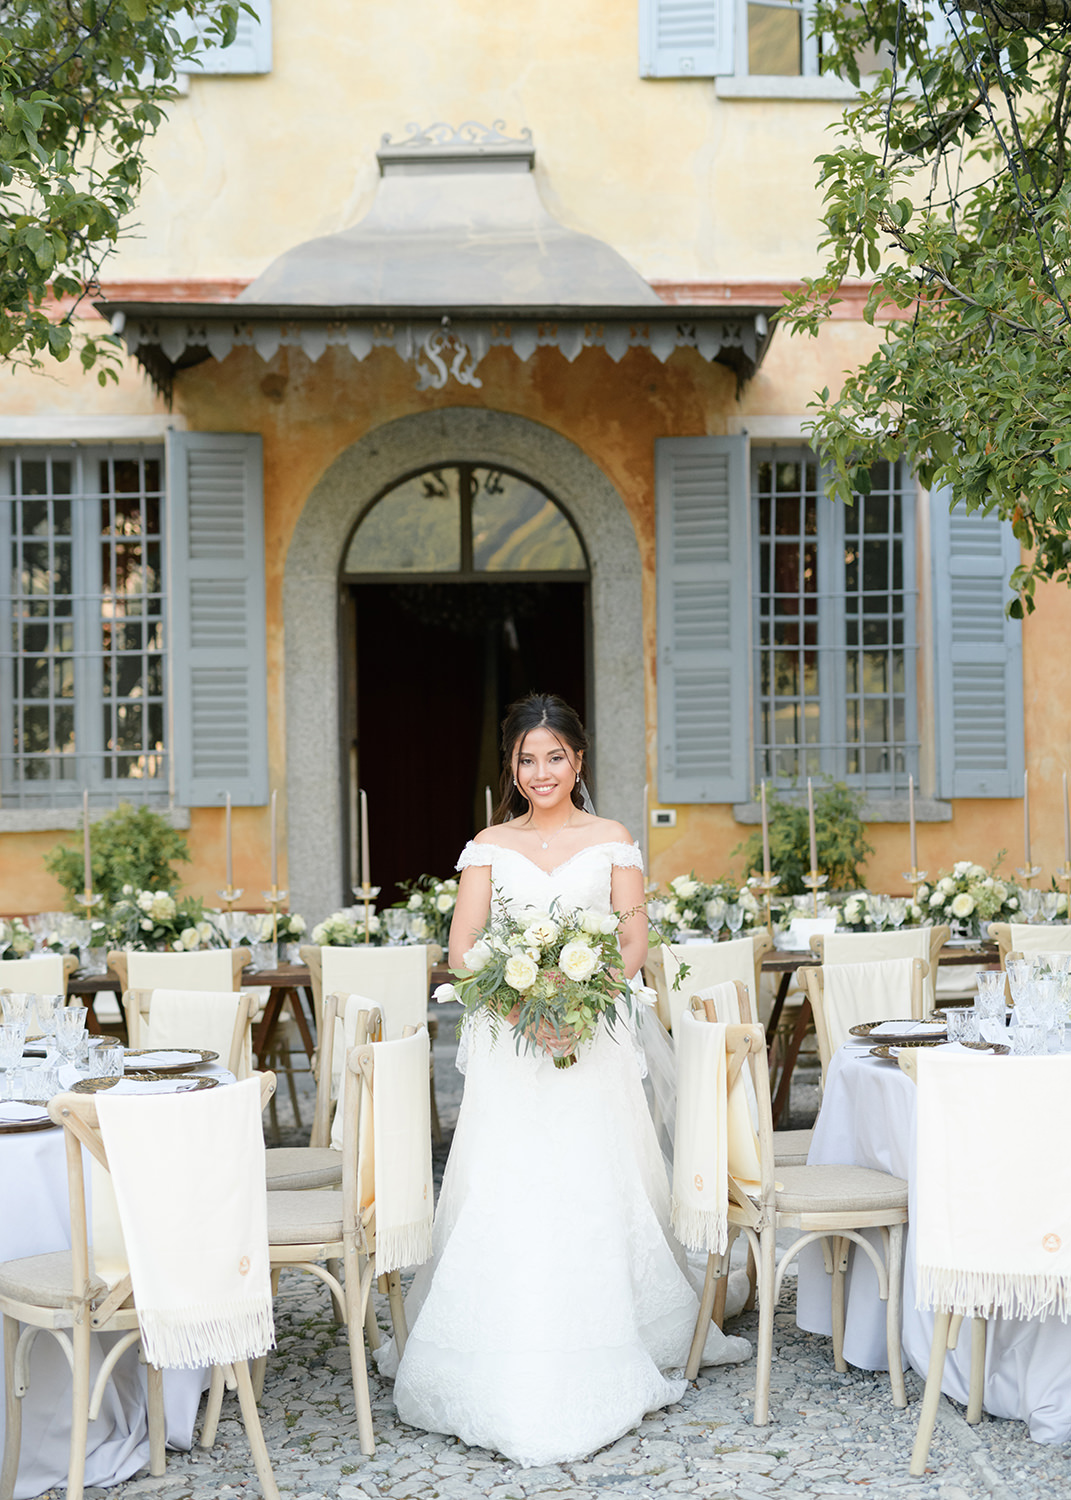 villa-regina-teodolinda-wedding-photographer-C&B-©bottega53-56.JPG